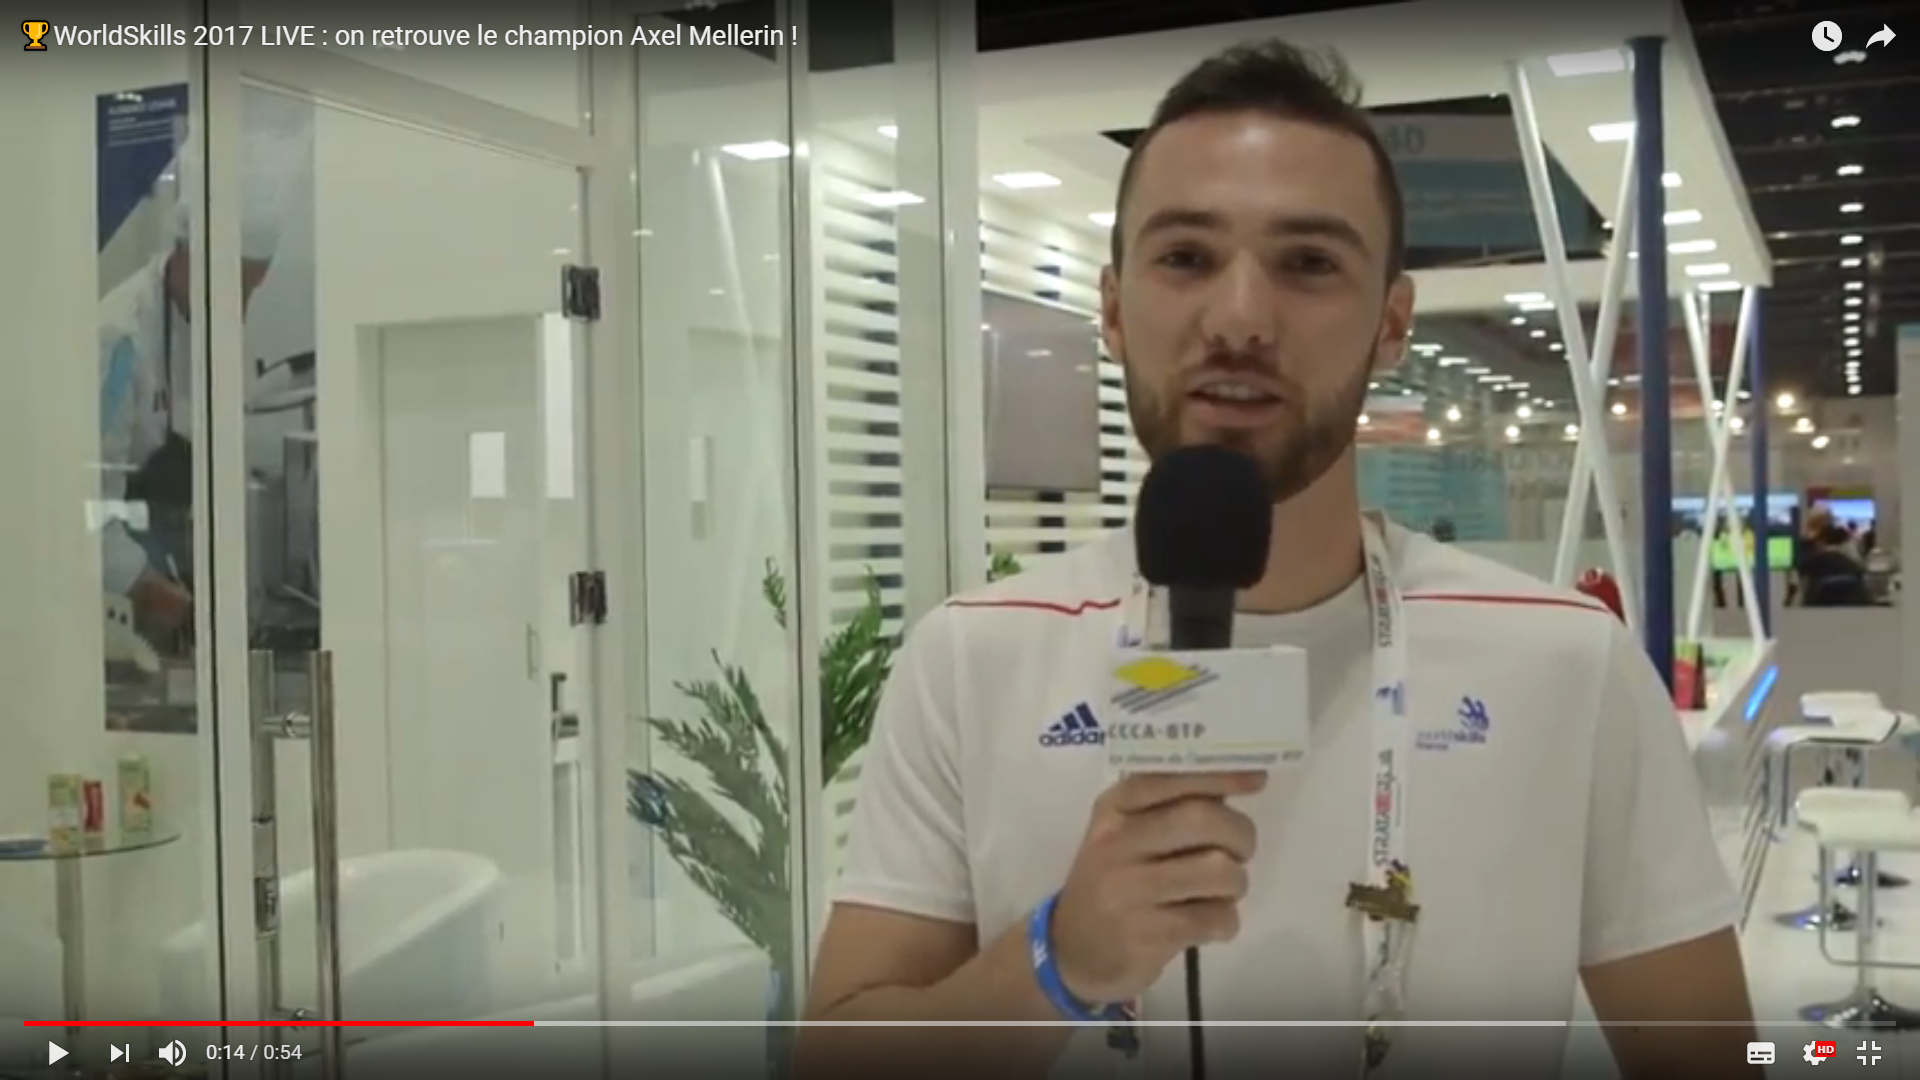 Interview d'Axel Mellerin au WorldSkills 2017